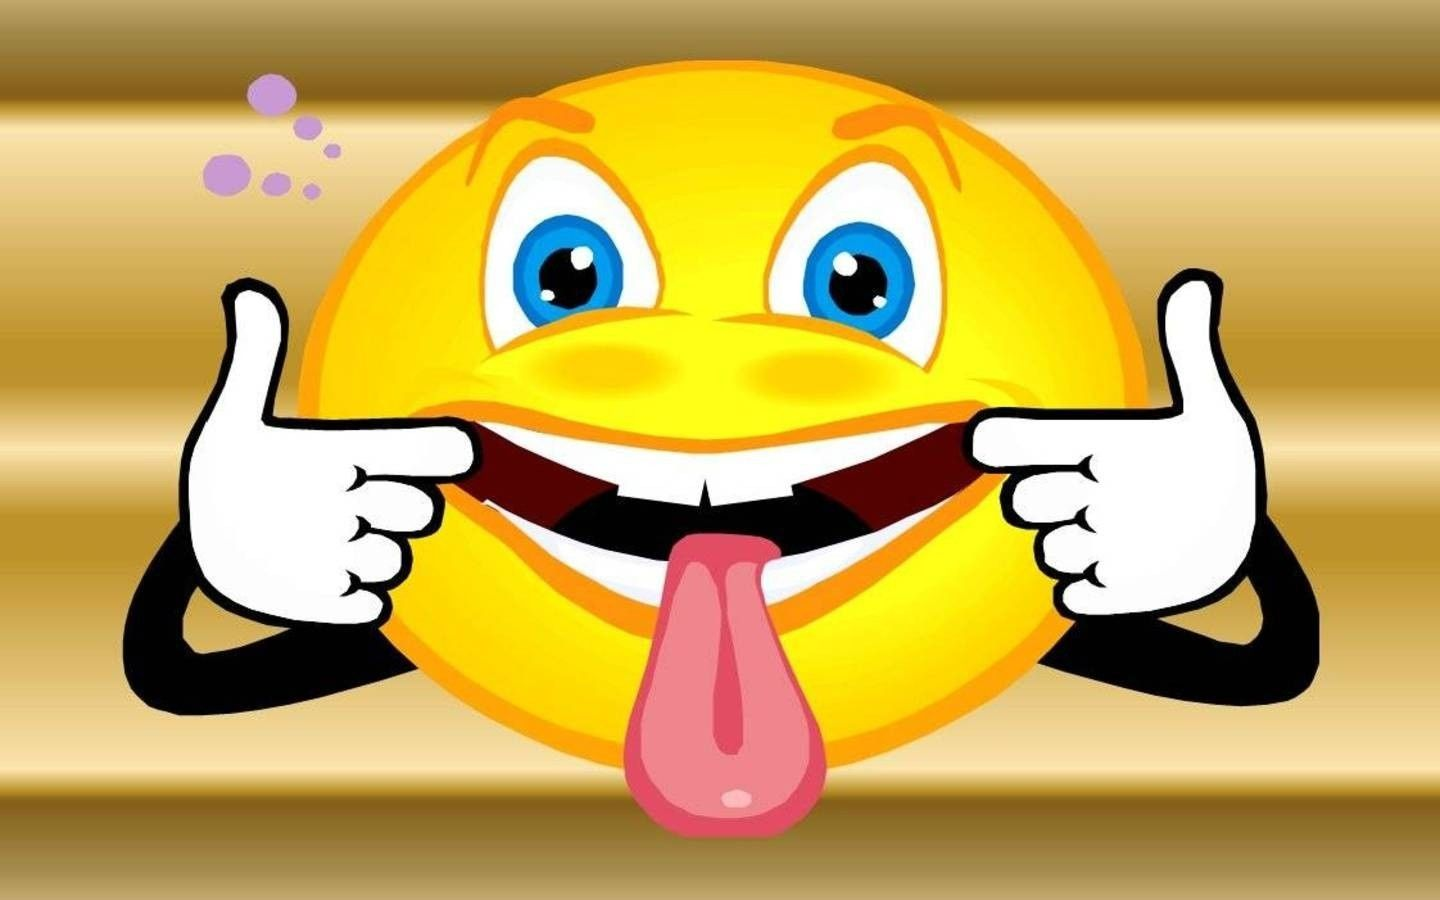 Pics for smiley face with tongue sticking out and winking cool emoji symbols biocorpaavc Images